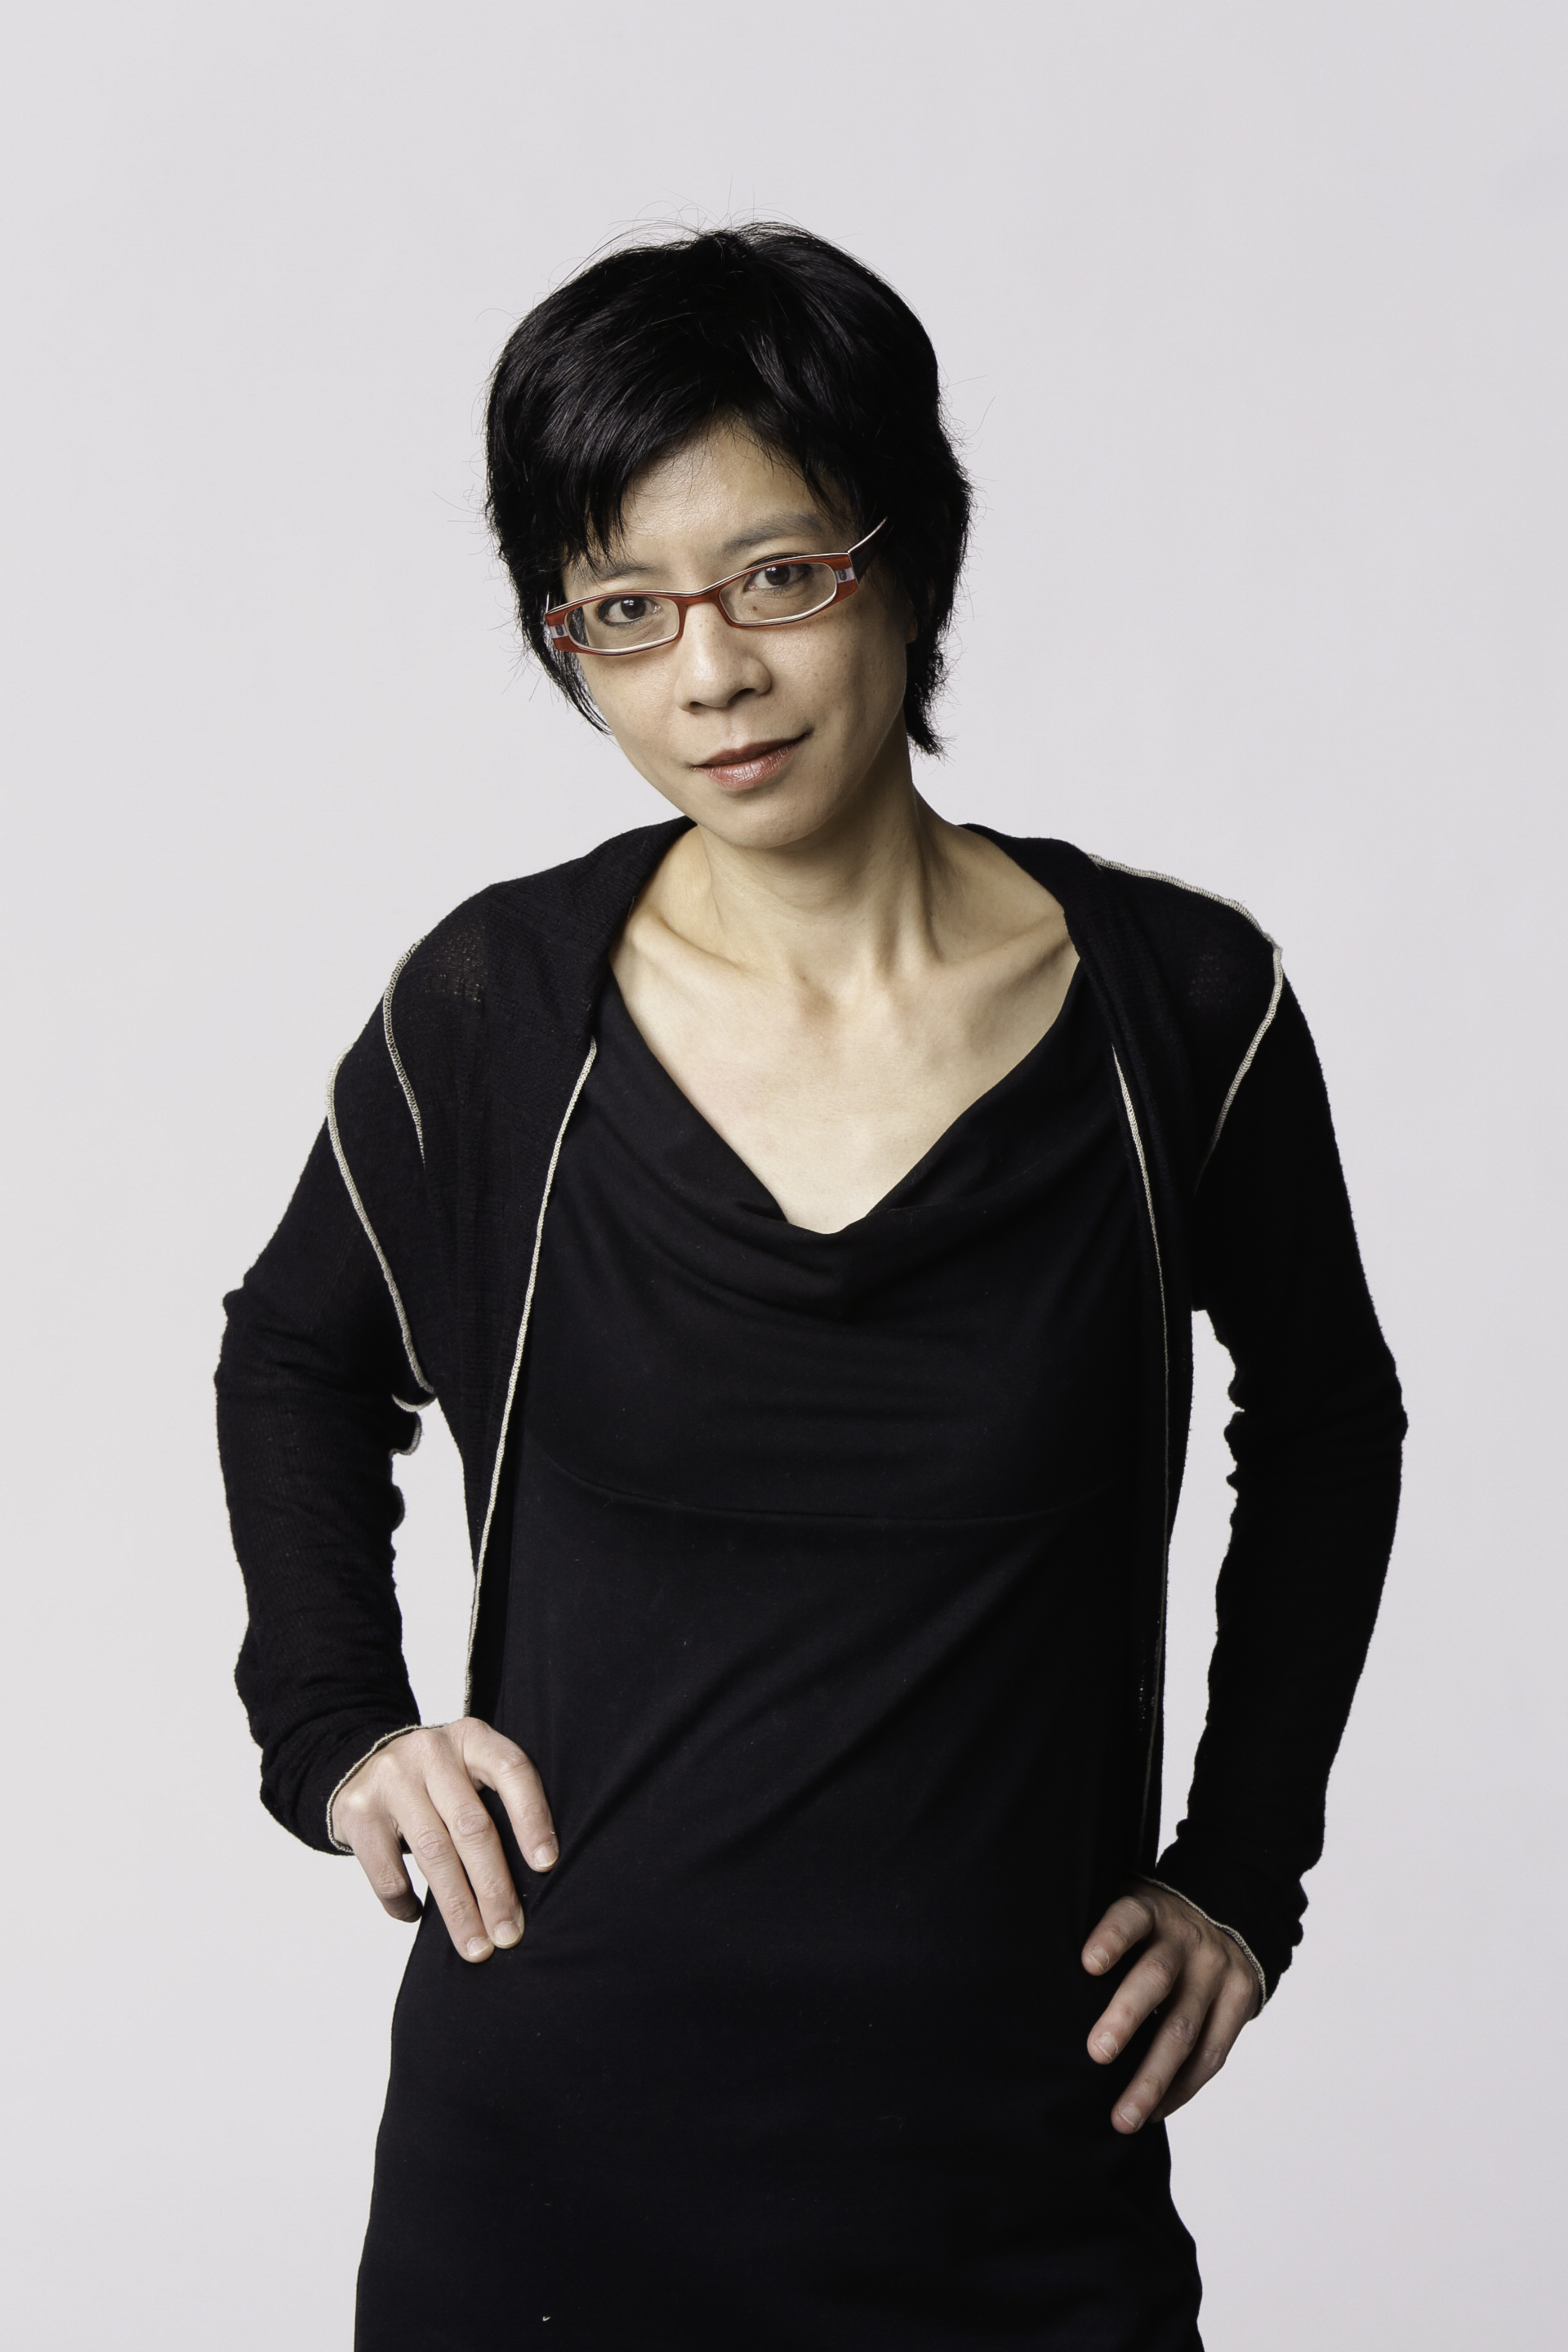 JU-PING SONGPianist, founder, director -